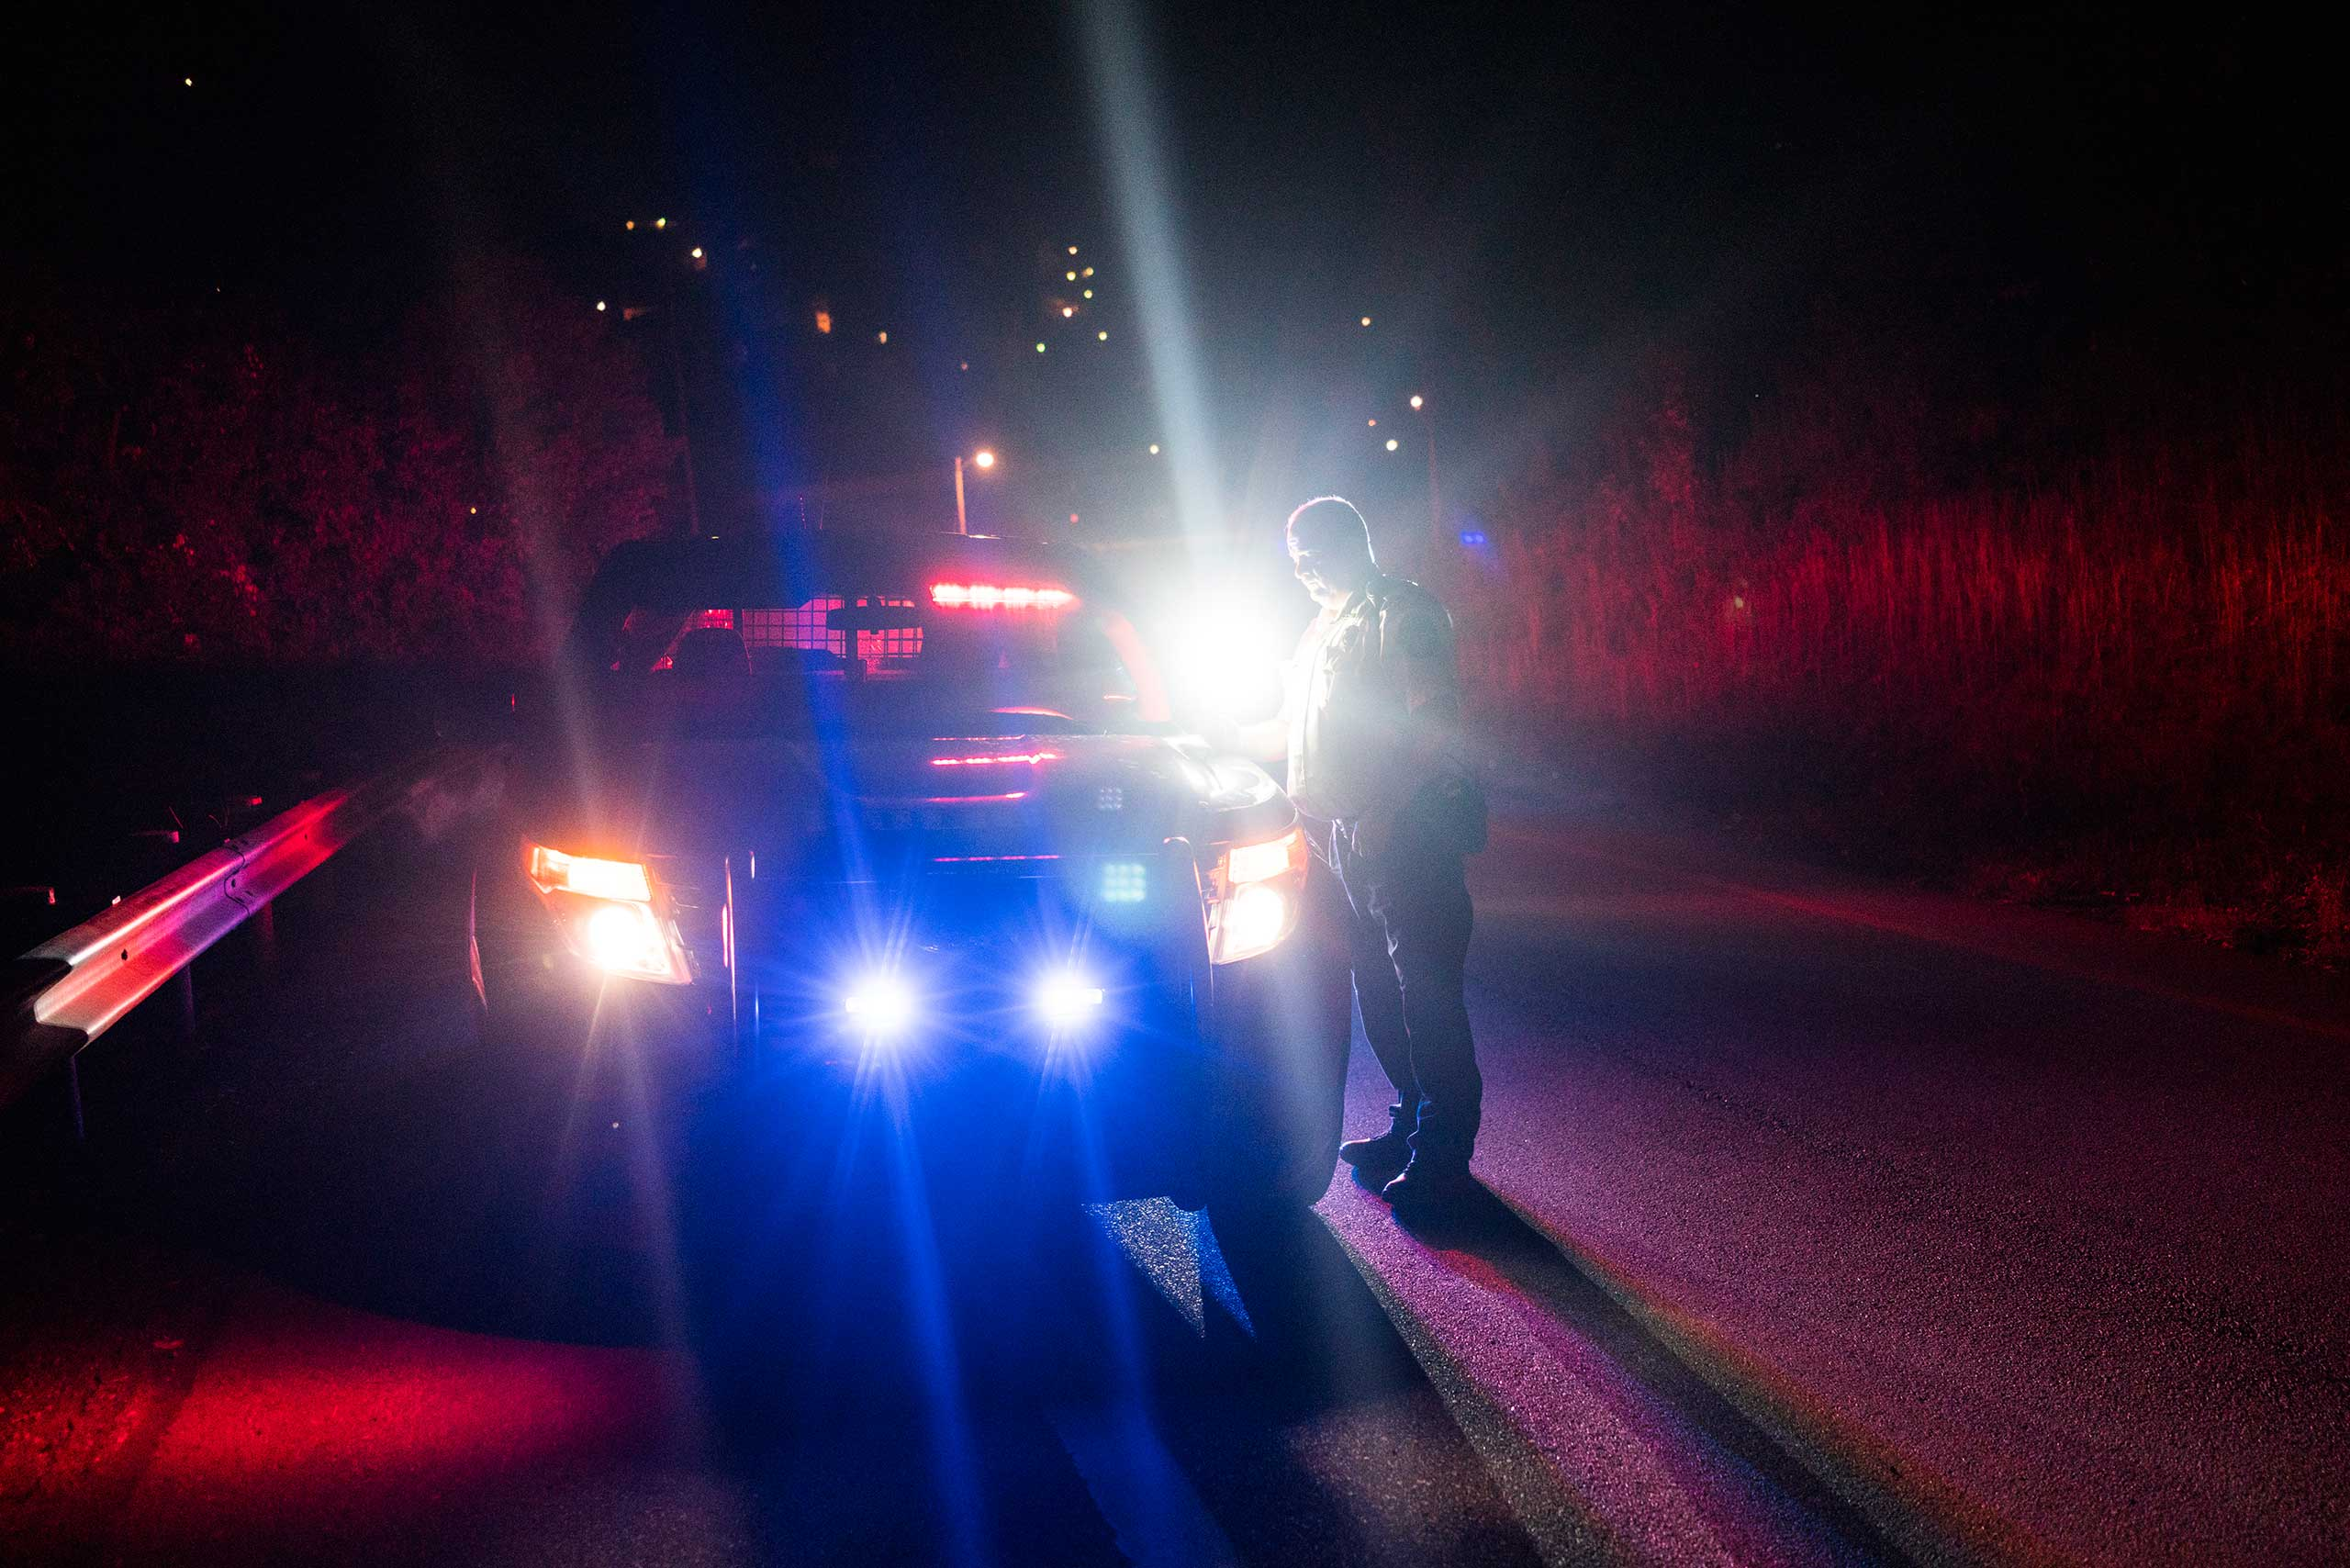 An East Liverpool police officer stands near his vehicle during a possible drug stop on the highway on Oct. 8, 2016. Police said many drug users have a Driver's ID from one state and plates from another since East Liverpool is right on the border between Ohio, Pennsylvania and West Virginia. Drug offensives are much more severe in the latter, so many prefer to be caught and charged in Ohio.